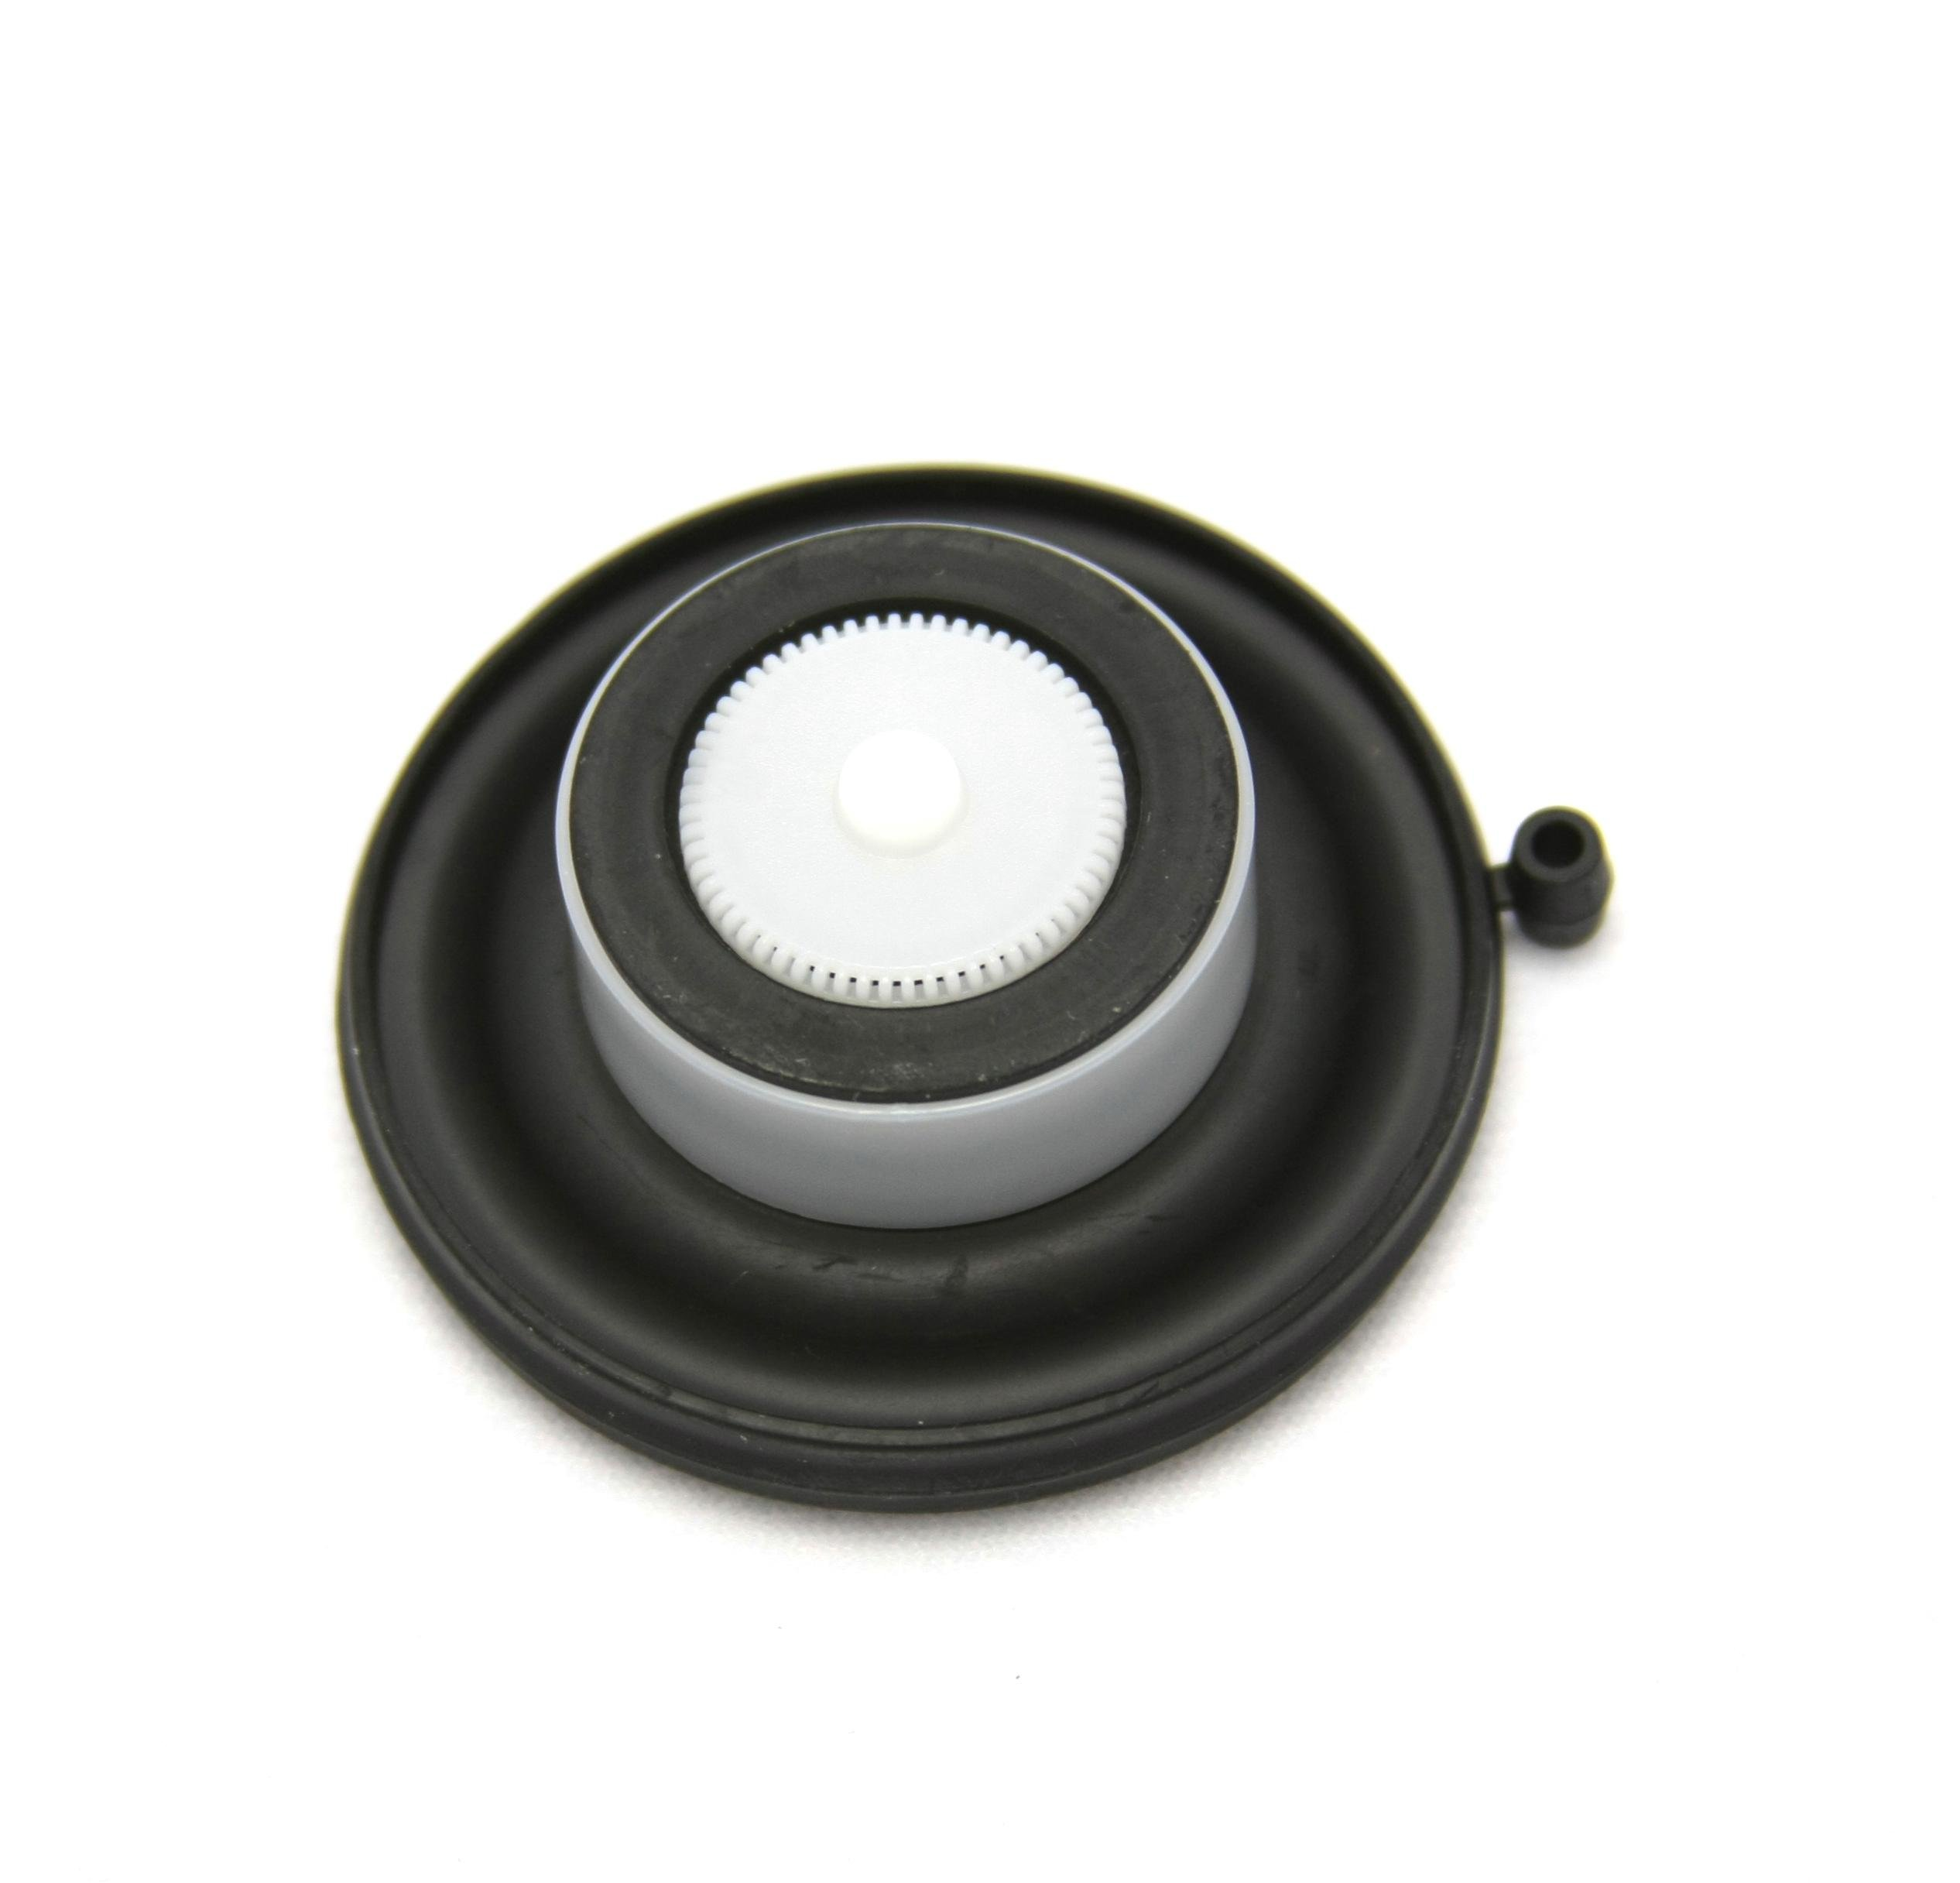 Valve Diaphragm Assembly for Hunter PGV 1 inch Valves - all ASV & SRV Valves